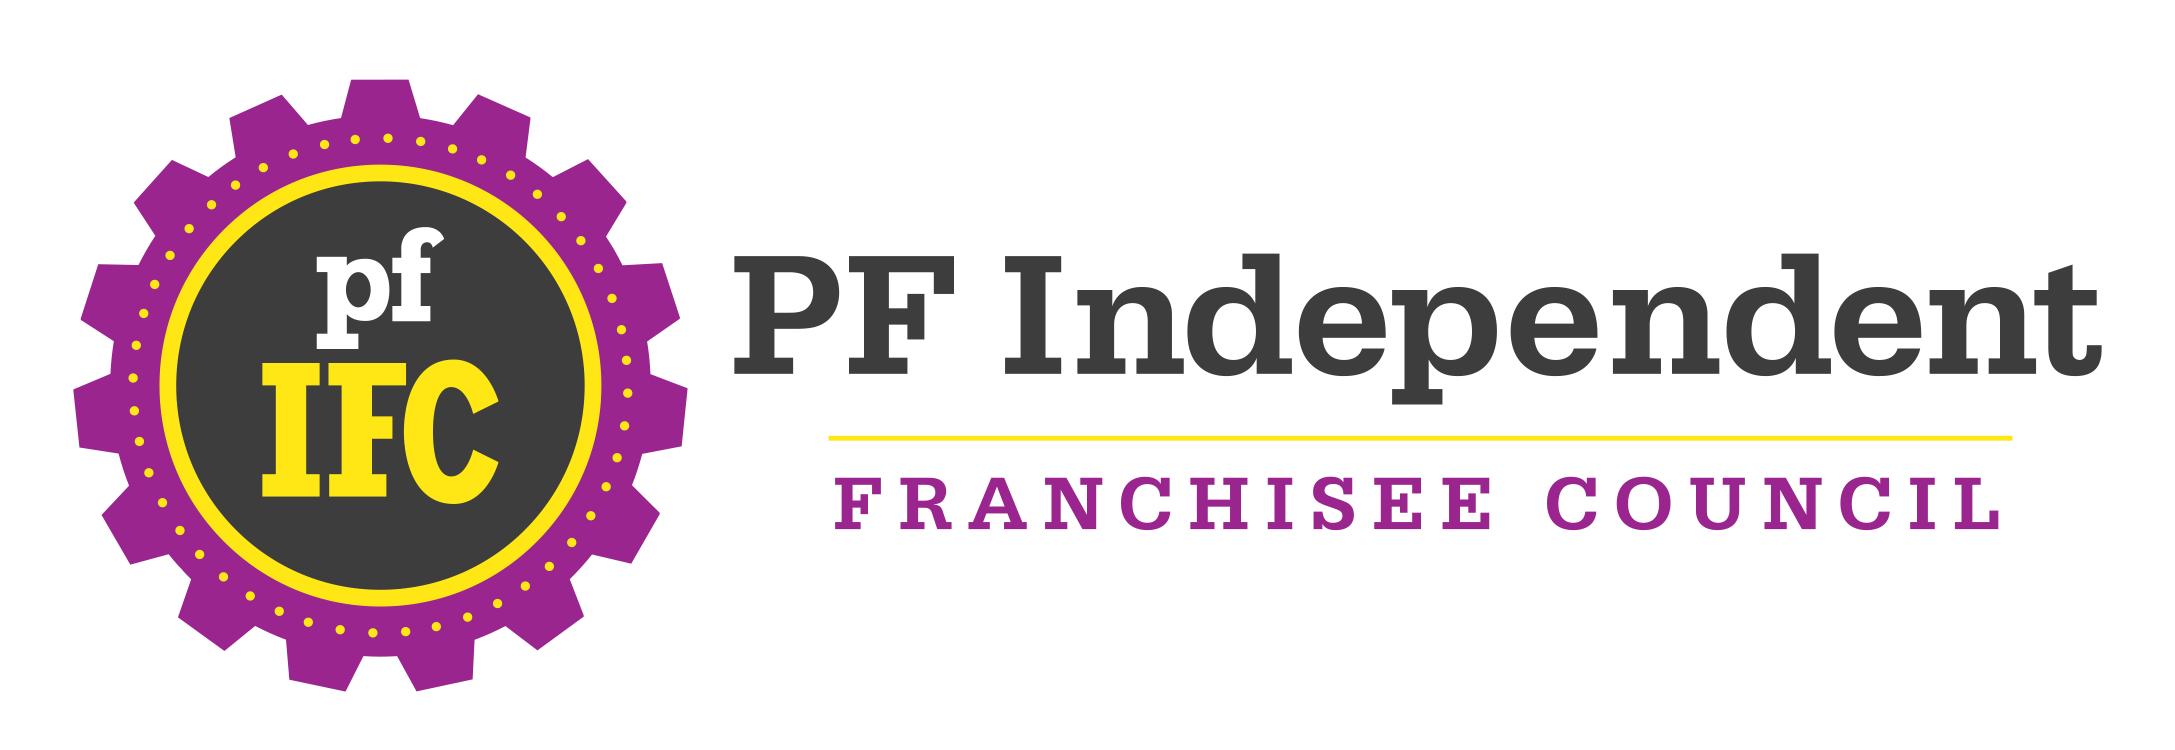 Planet Fitness Independent Franchise Council